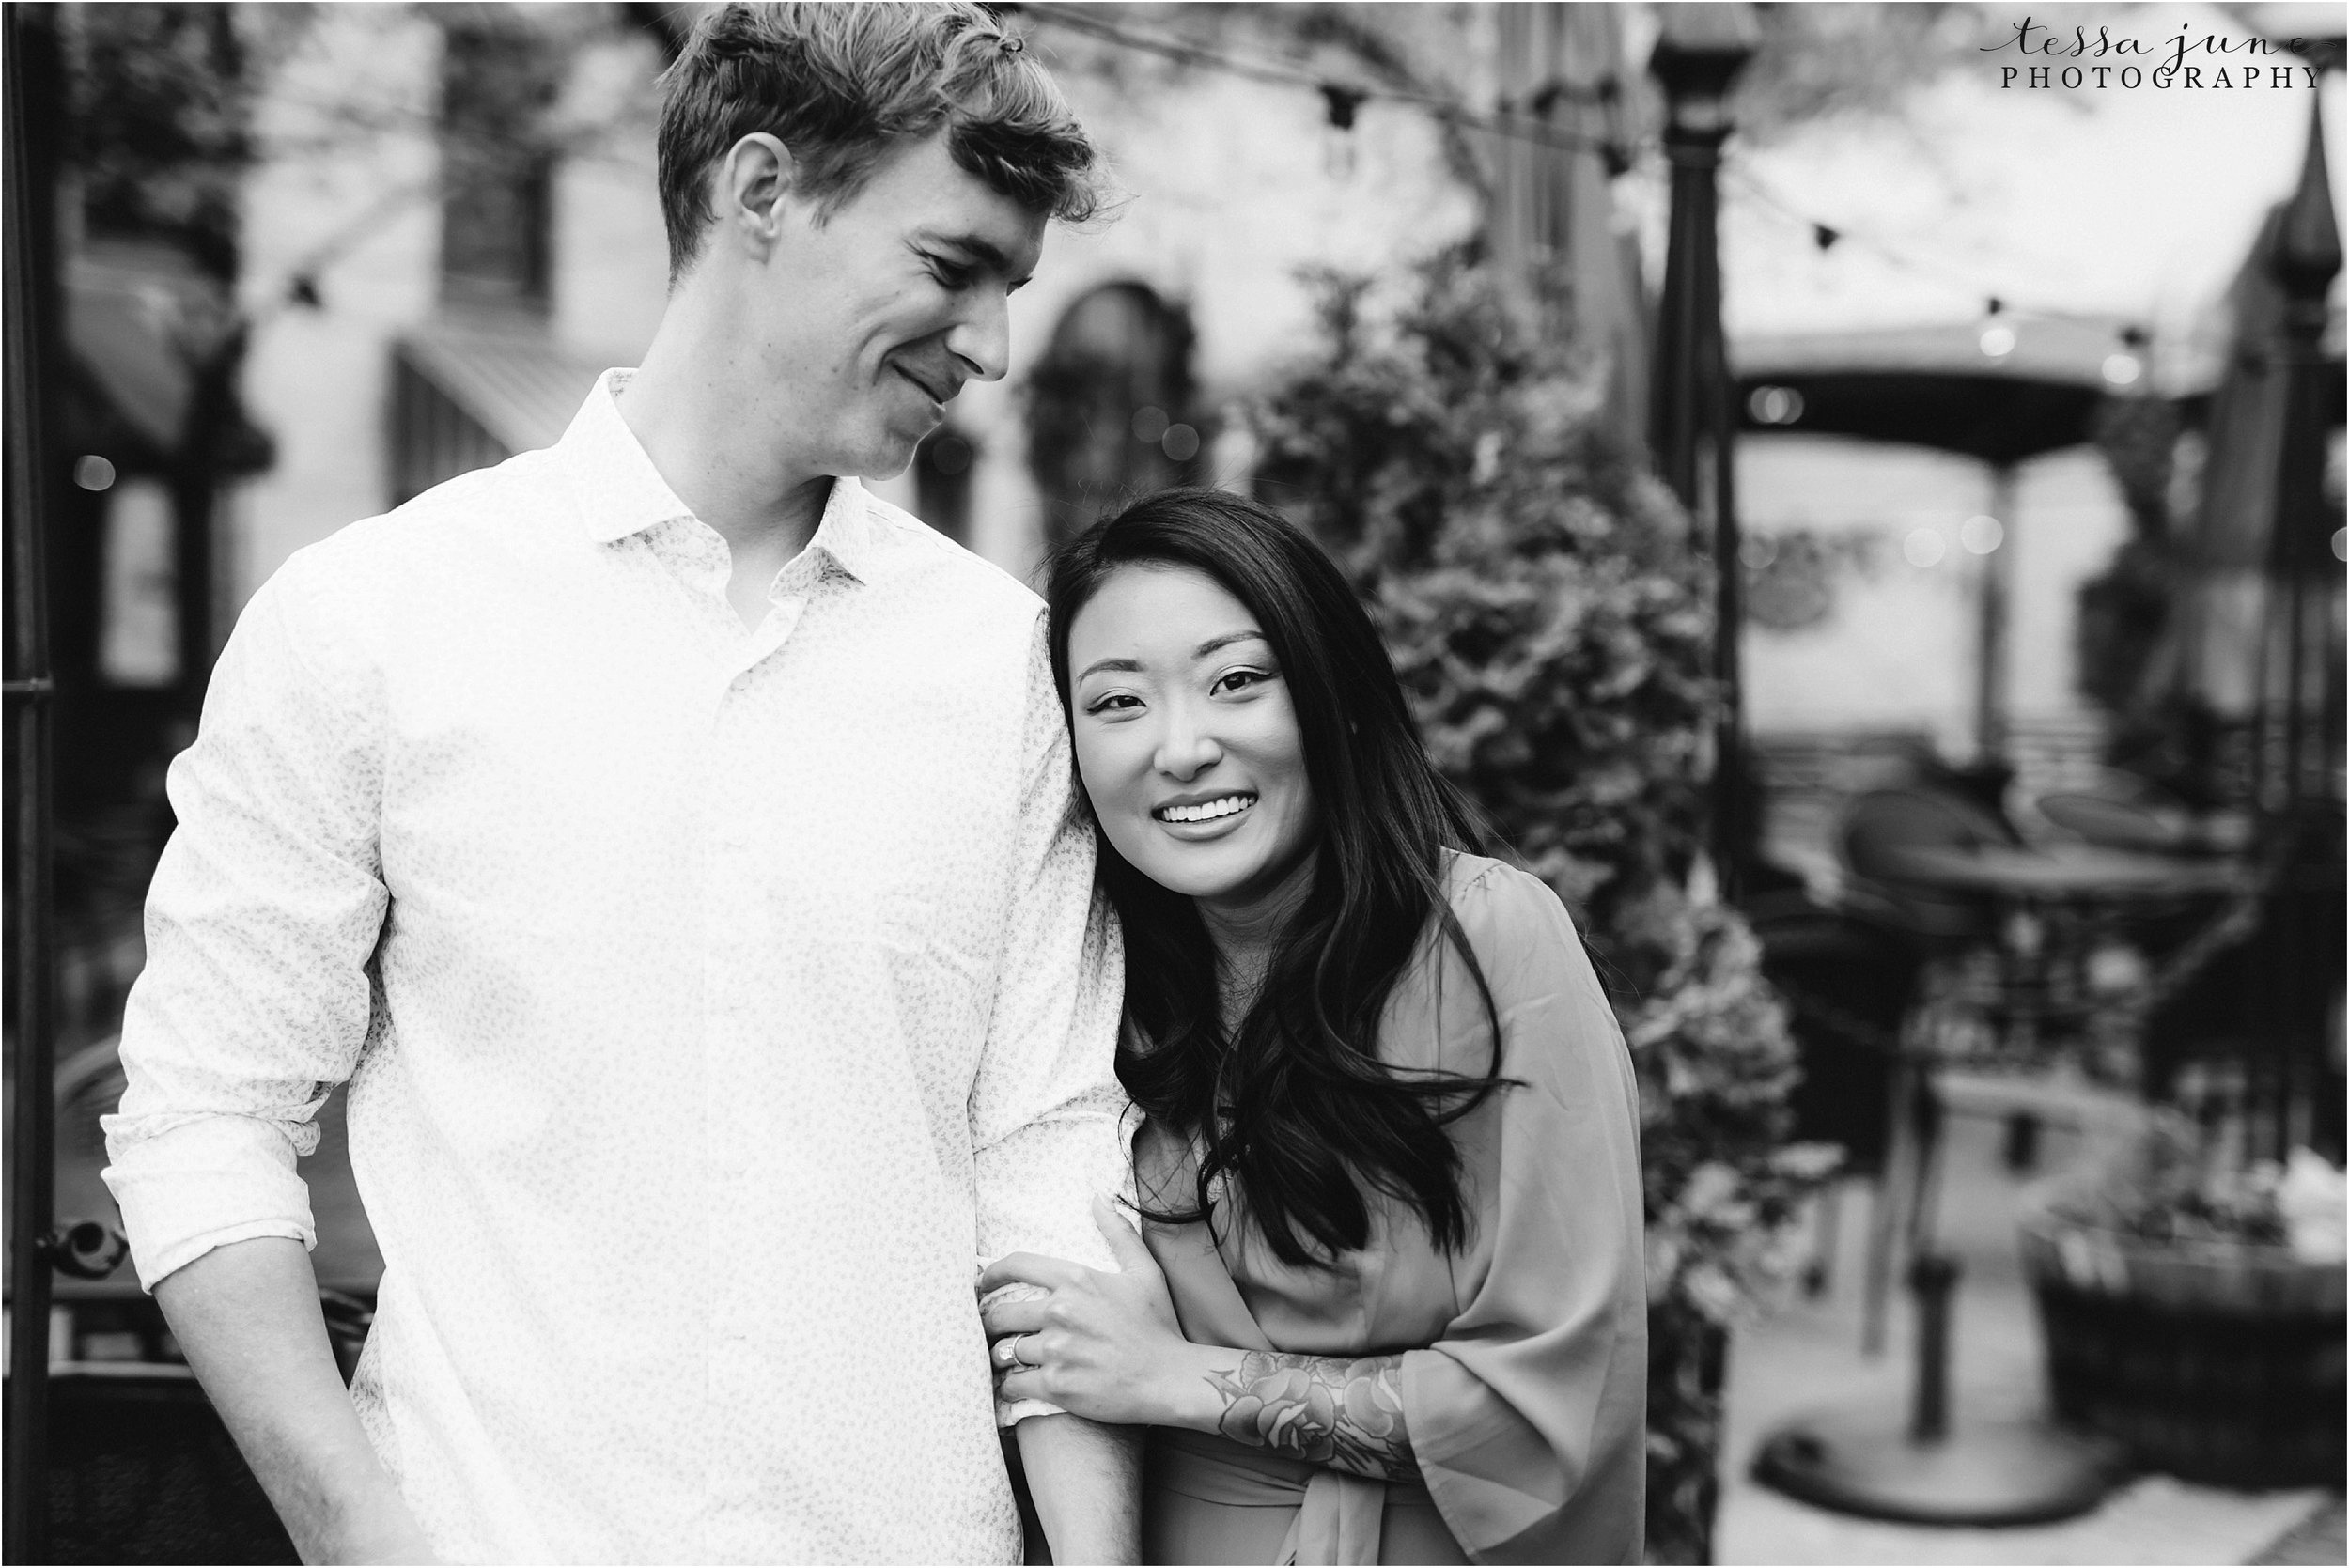 st-anthony-main-minneapolis-engagement-session-red-dress-6.jpg